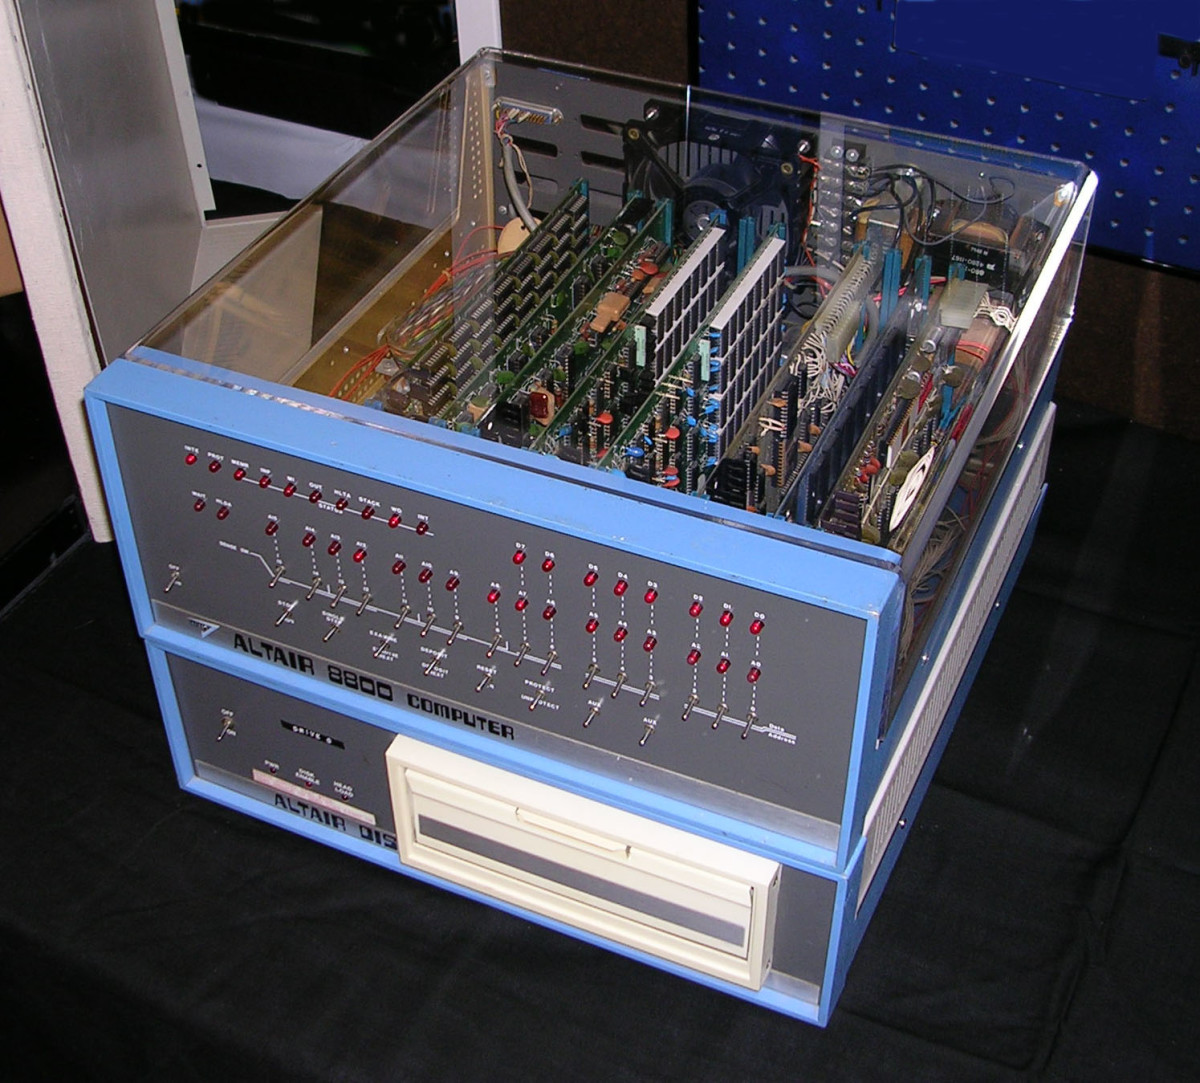 Altair 8800 Computer with 8 inch floppy disk system